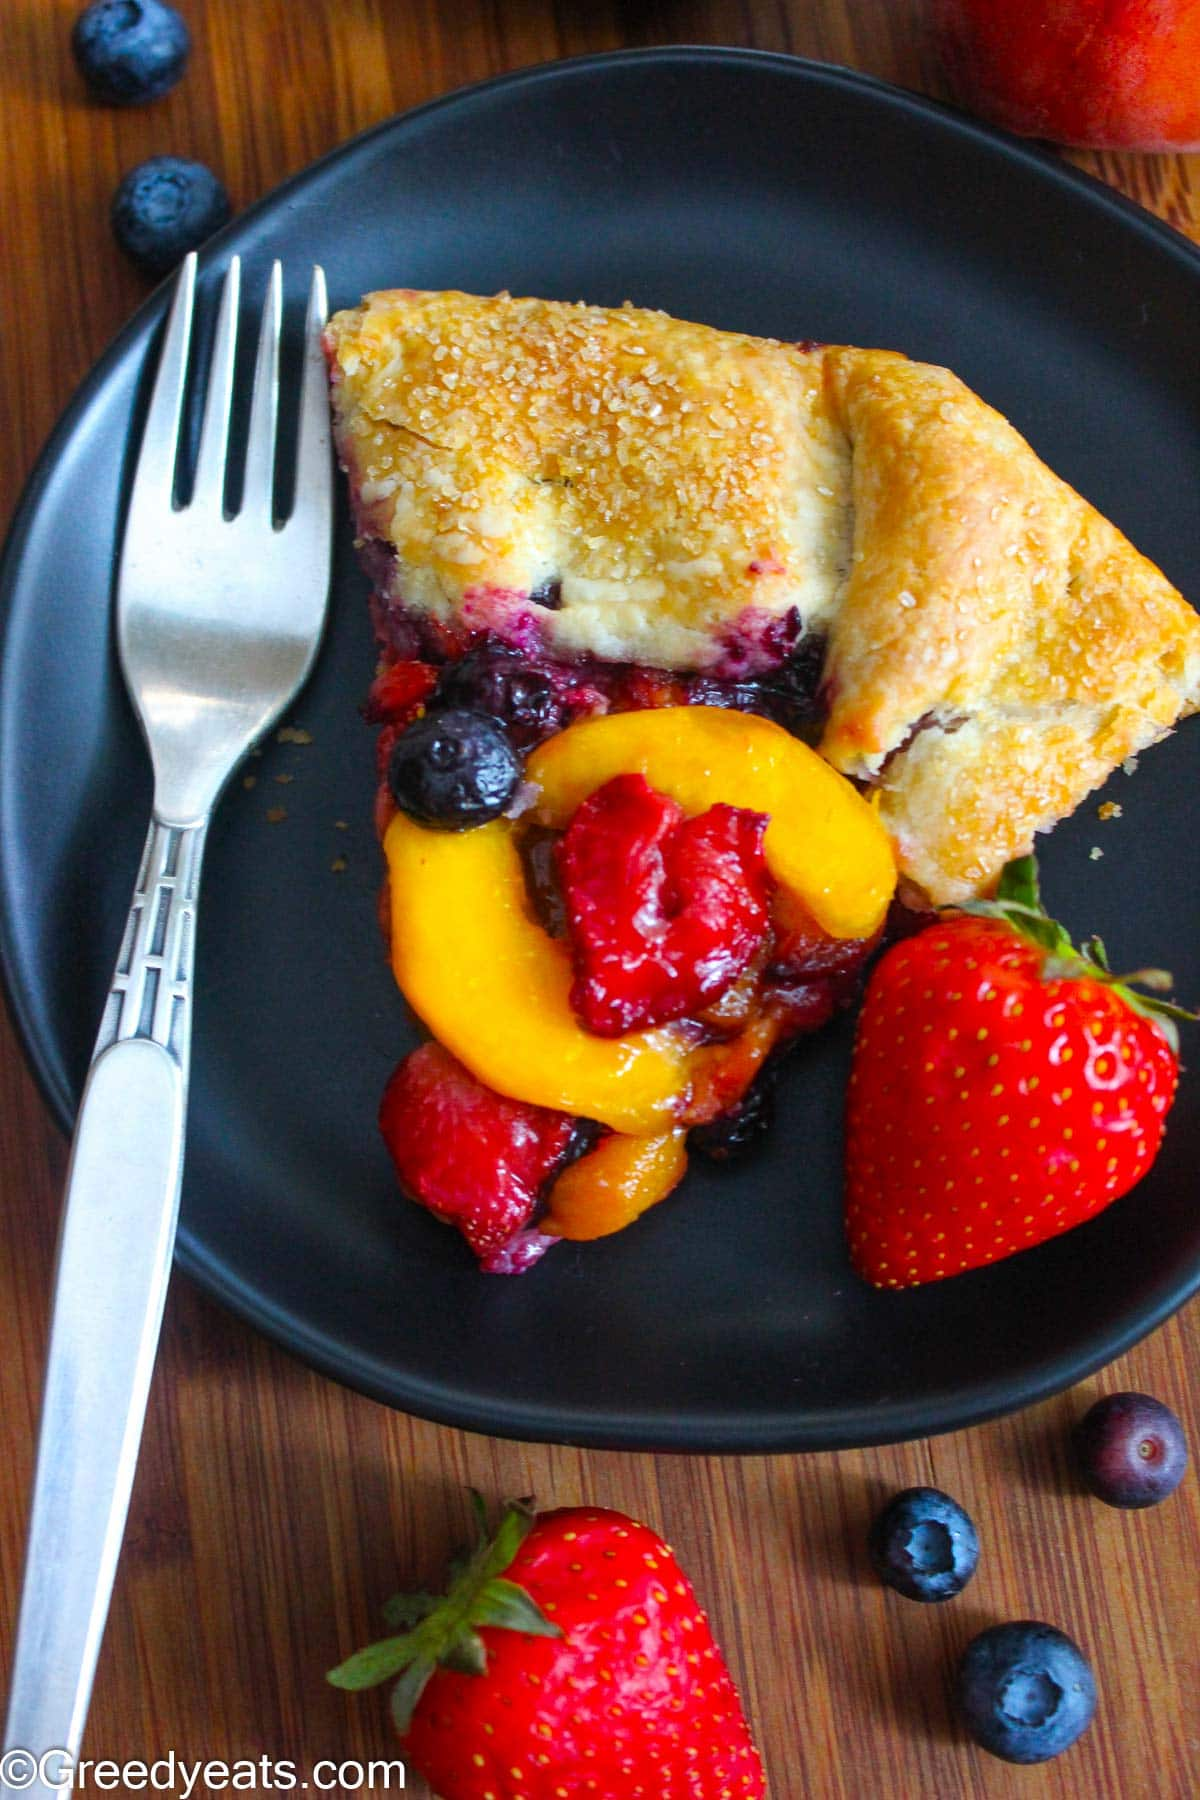 A slice of flaky Galette on black plate with peach and berries filling.